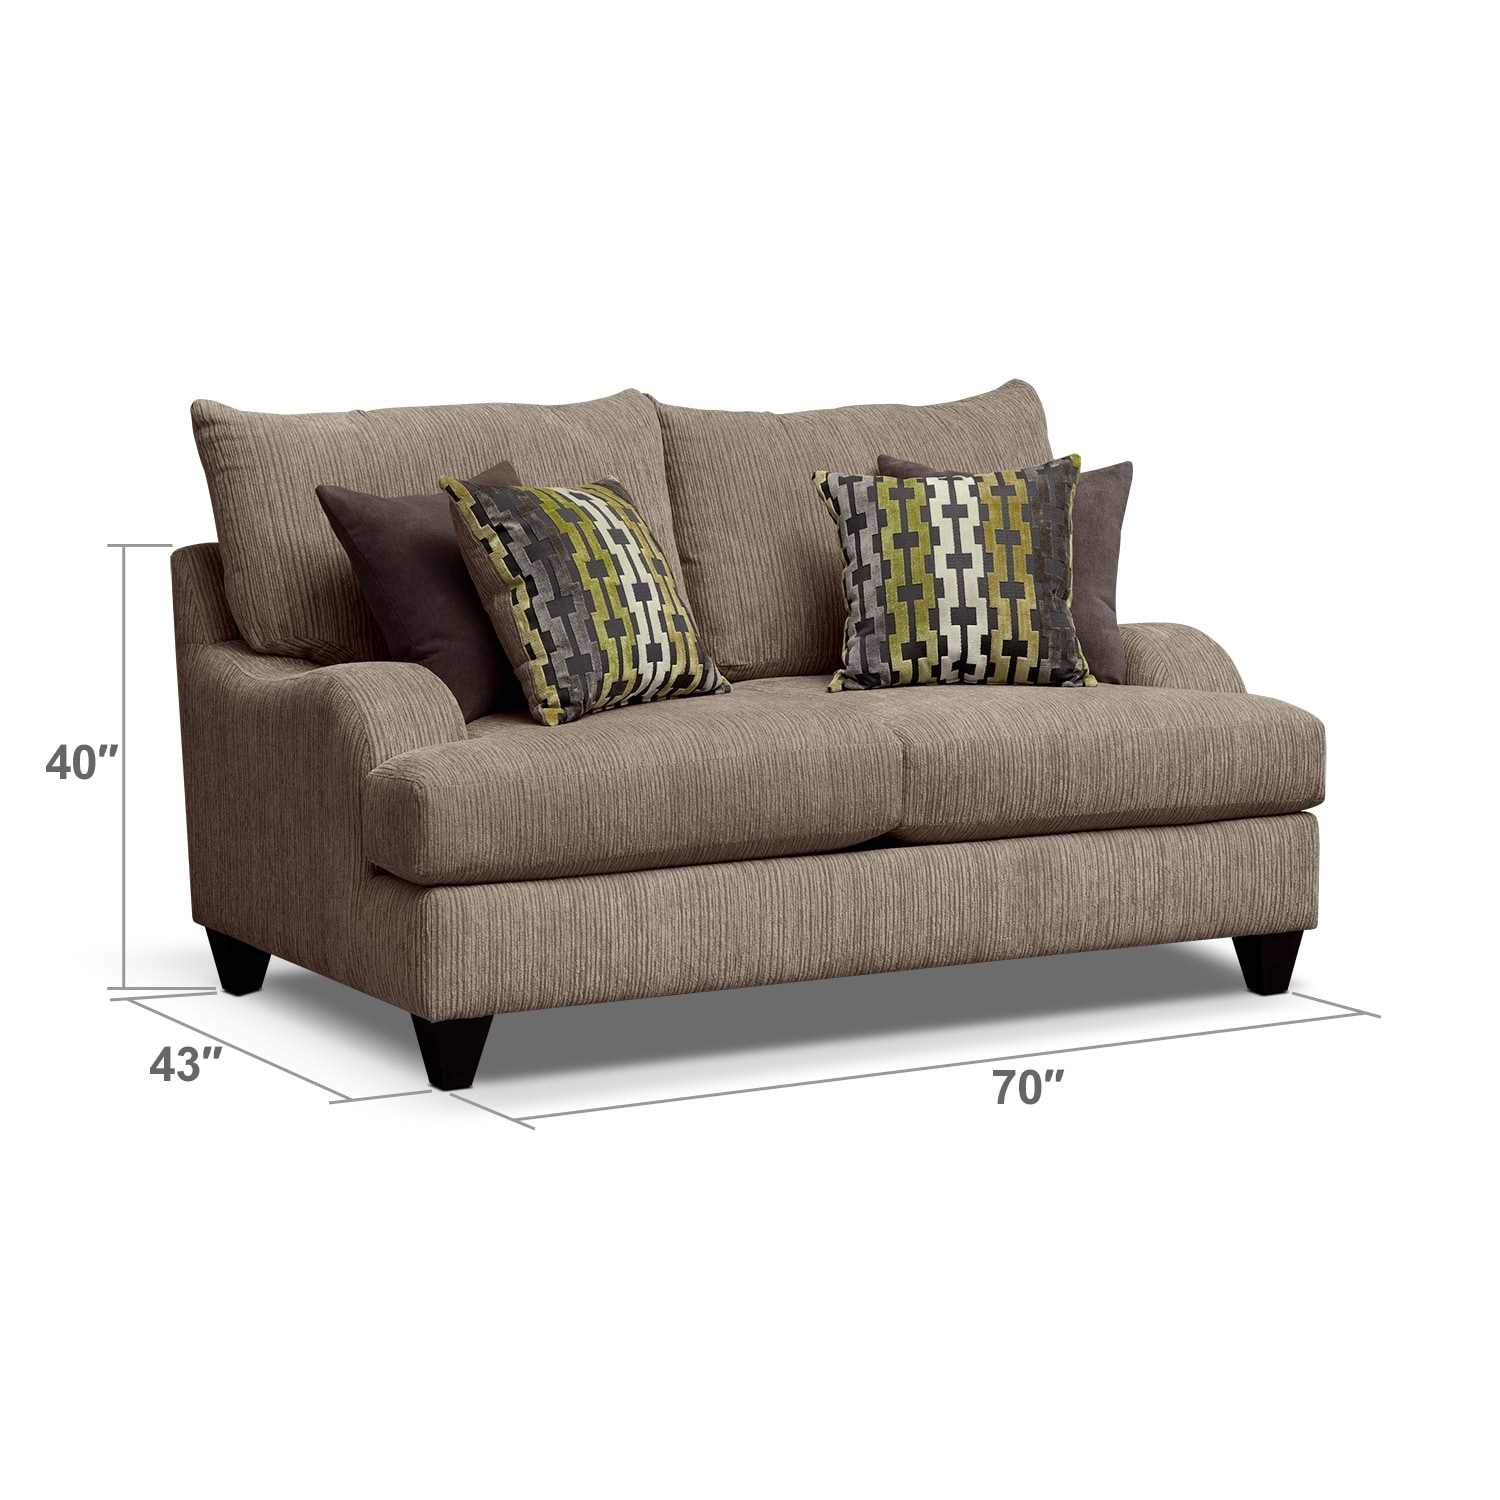 Living Room Furniture - Hollister Loveseat